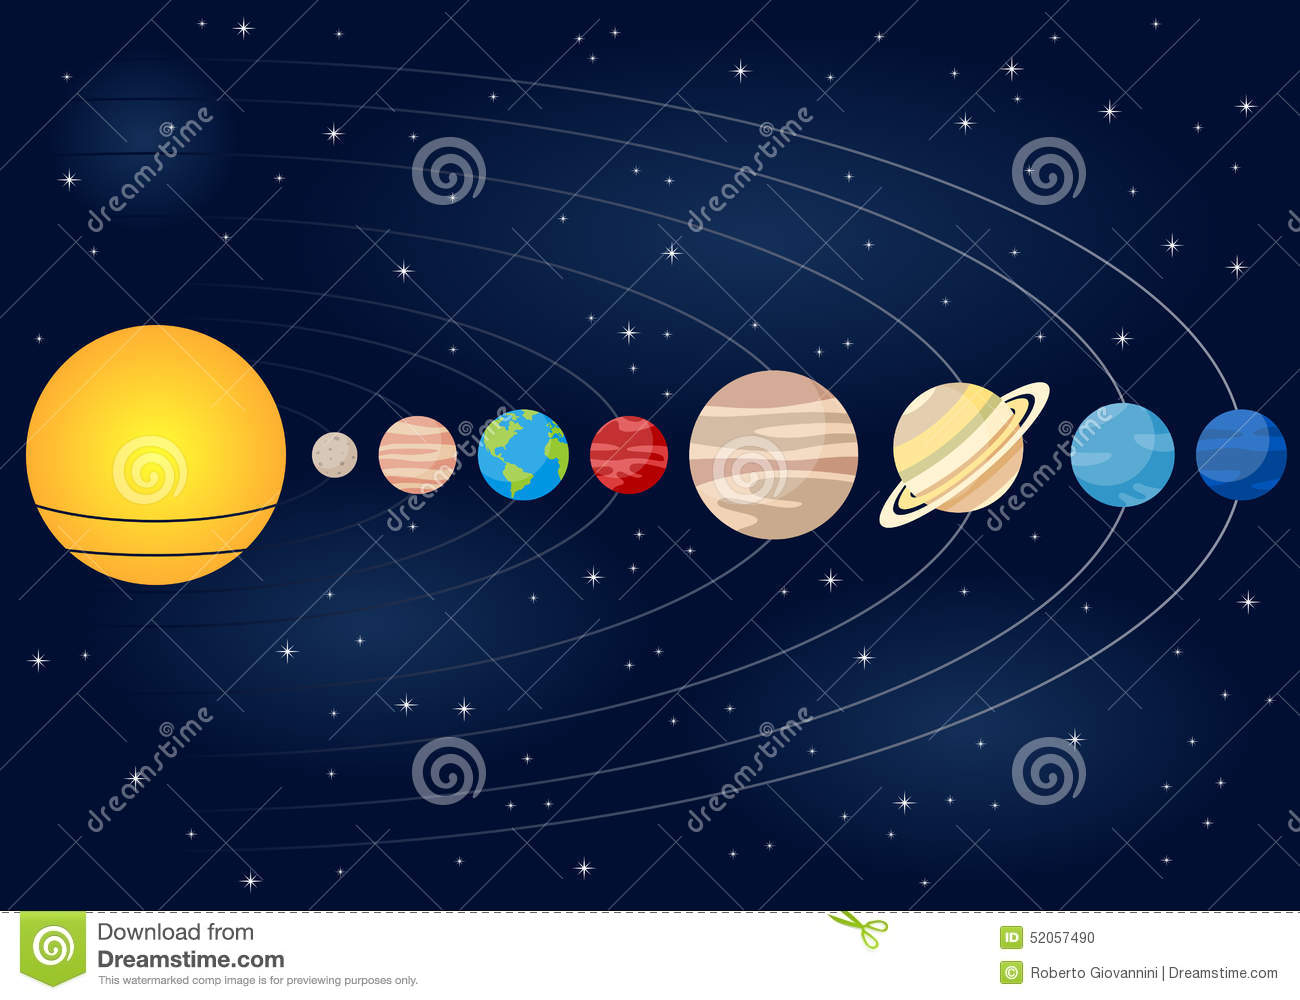 planets and outer space diagram - photo #25